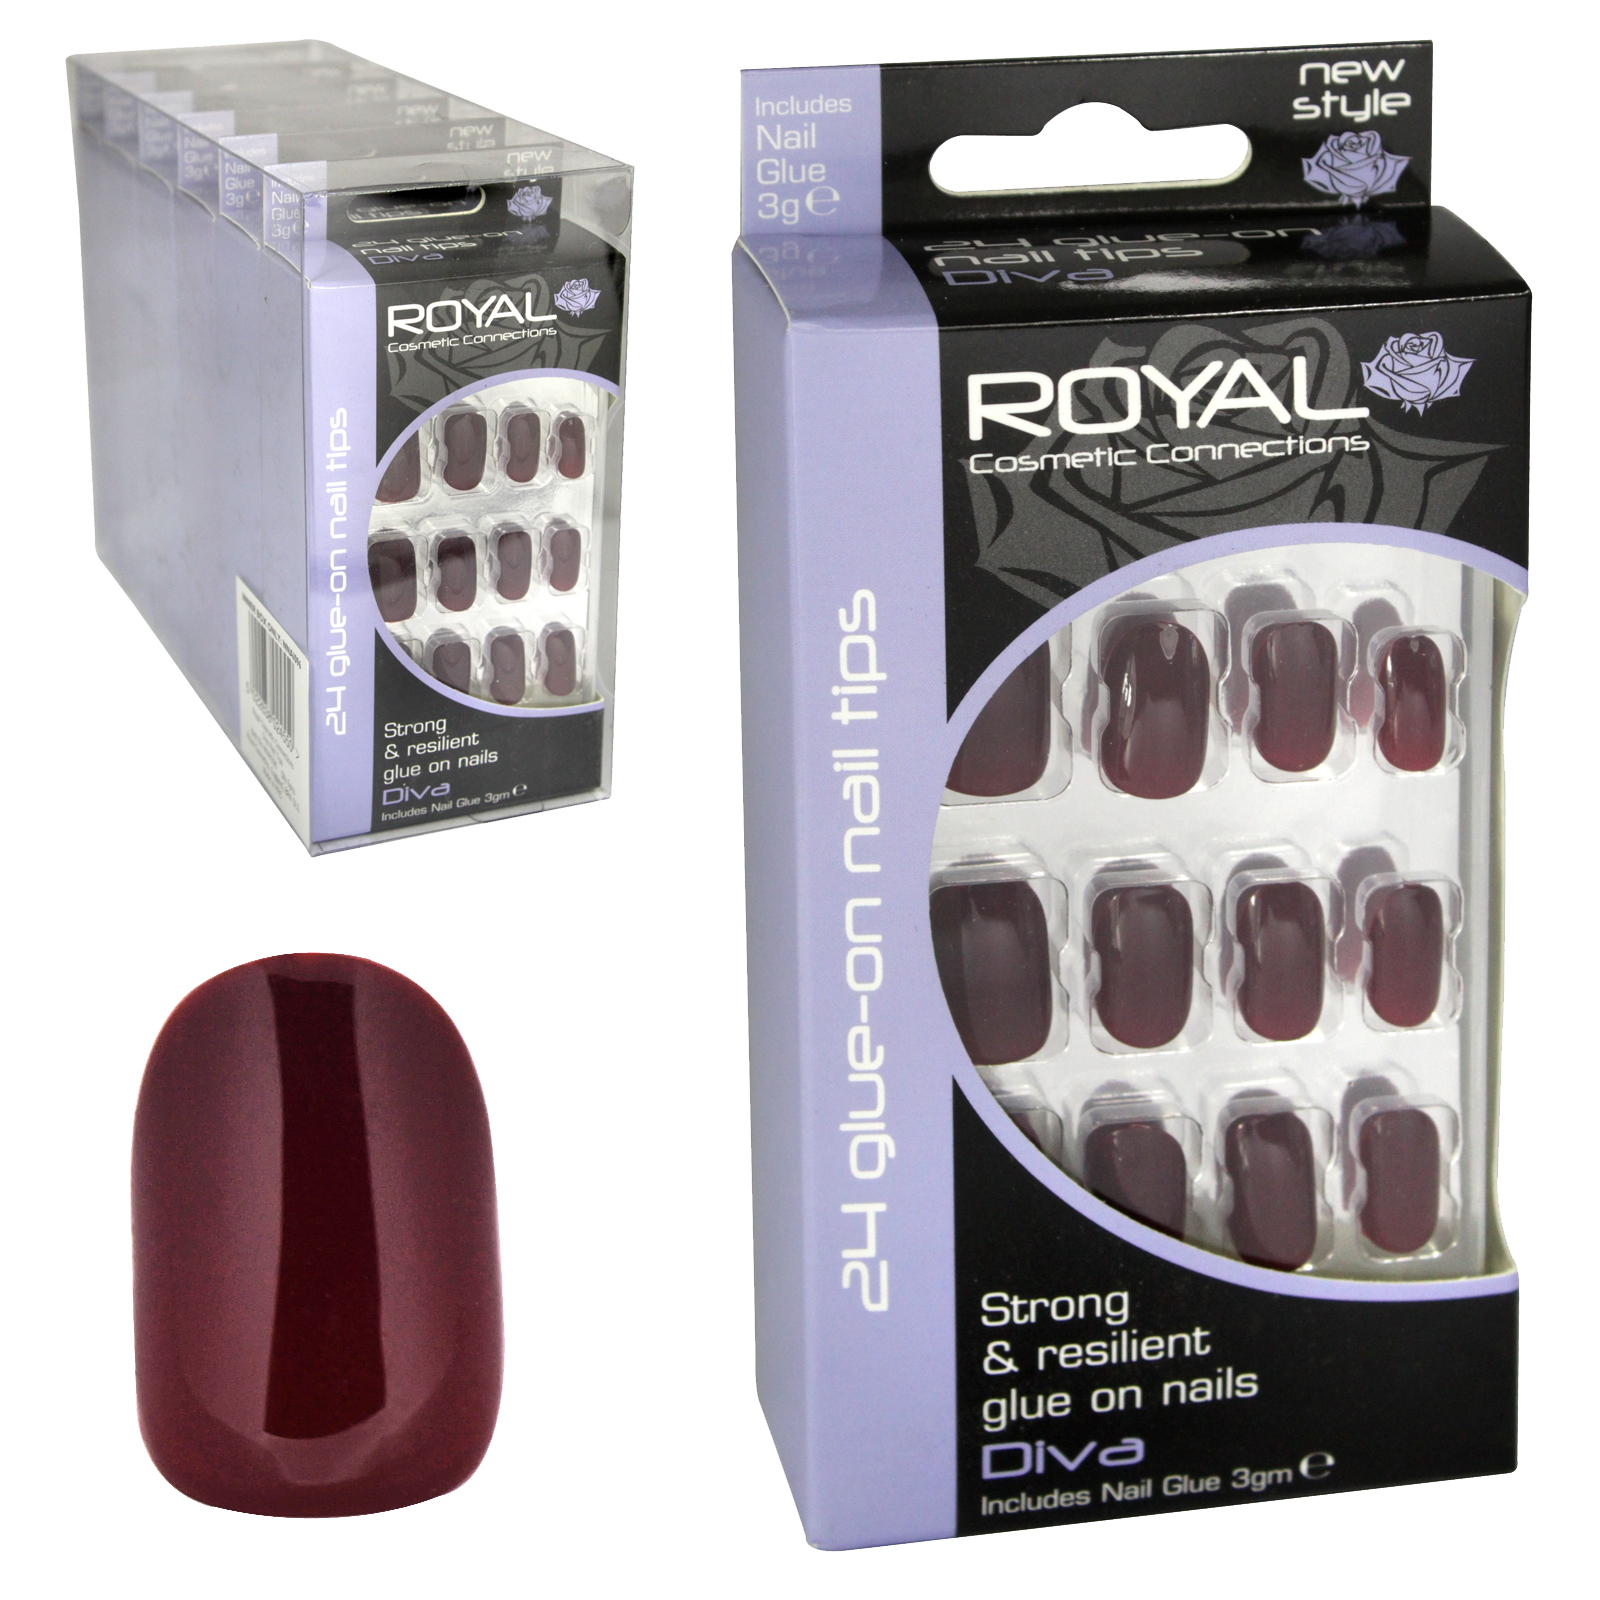 ROYAL 24 NAIL TIPS+3GM NAIL GLUE DIVA X6